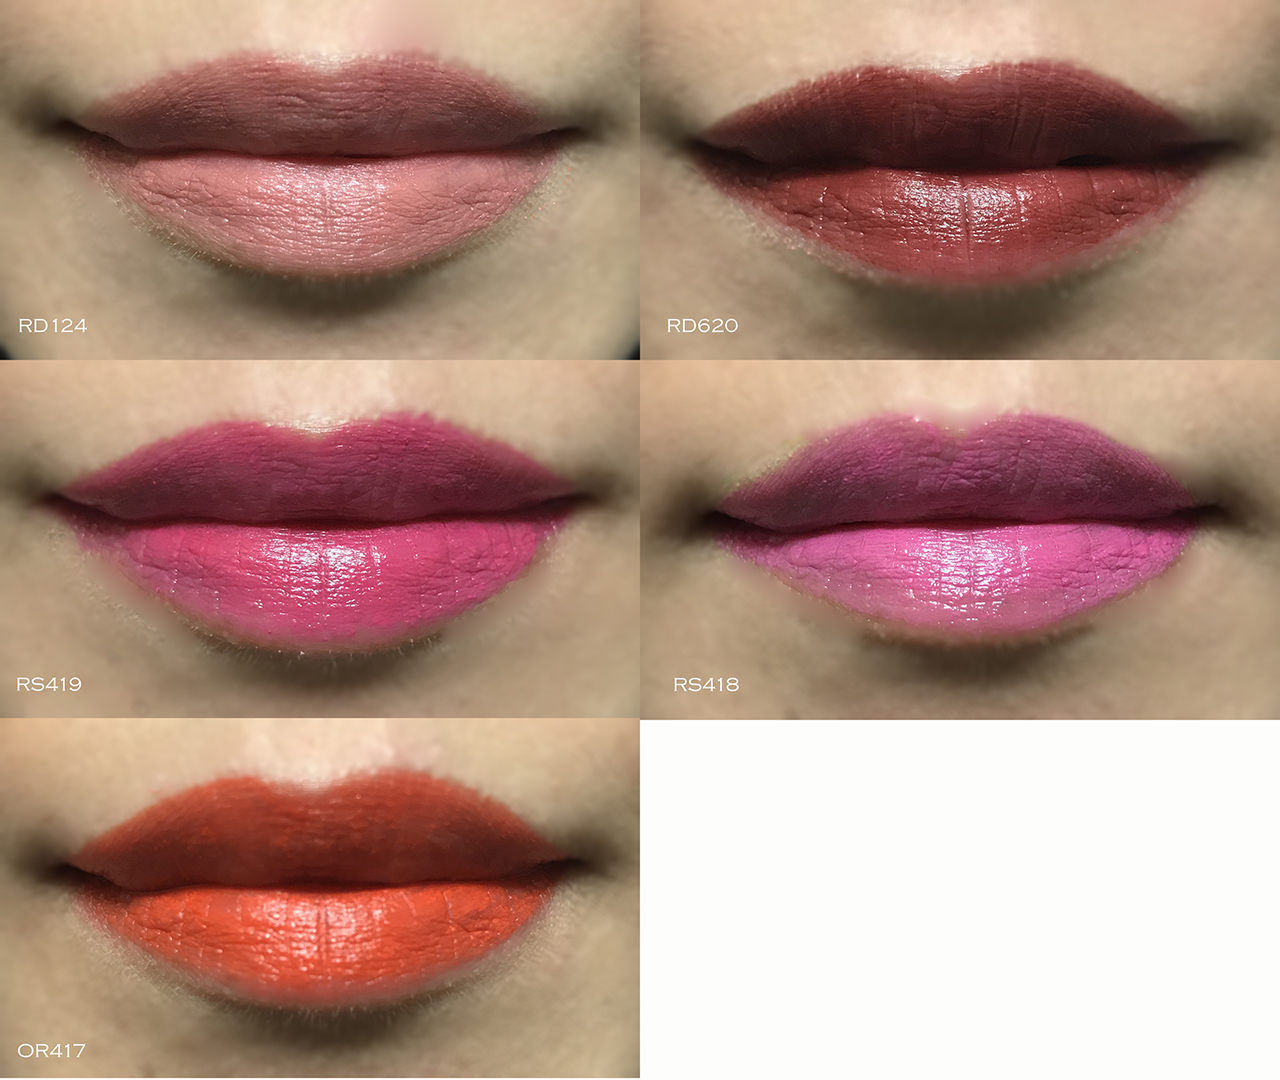 Shiseido Makeup Rouge Rouge lip swatches